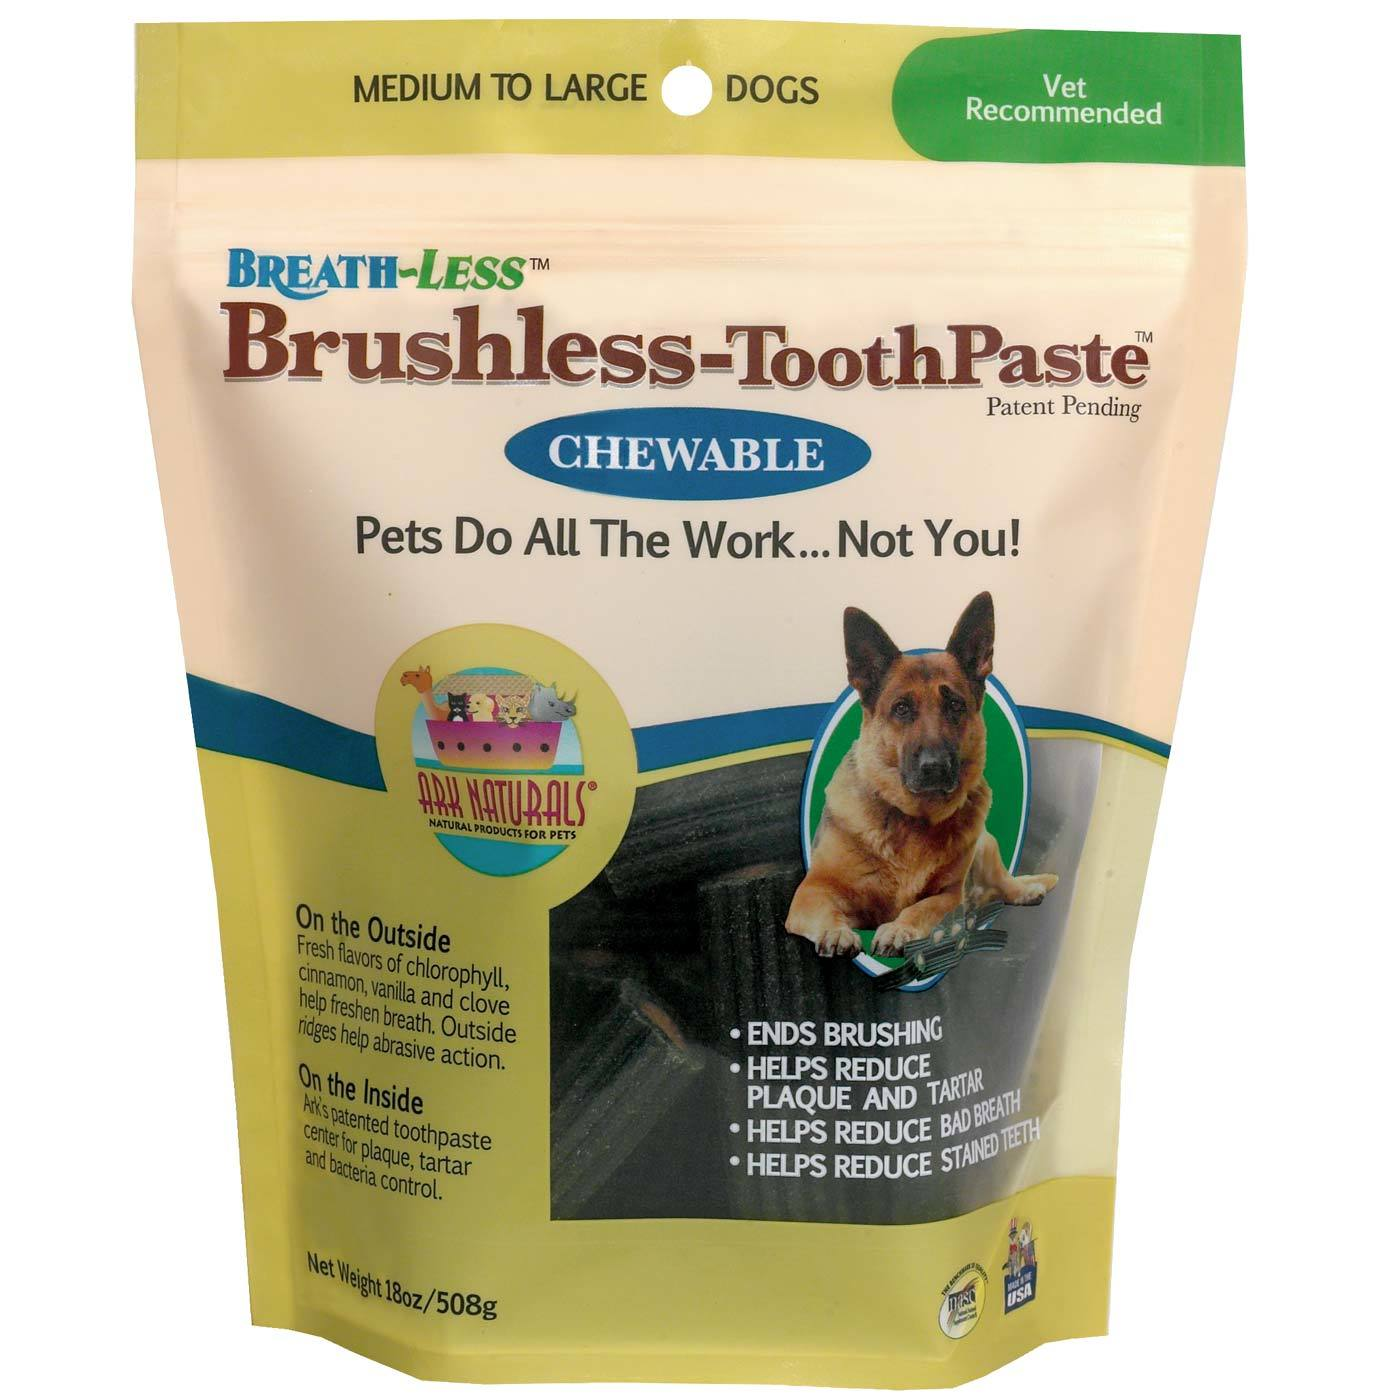 Ark Naturals Breath-less Brushless Toothpaste – Med to Large 18 oz